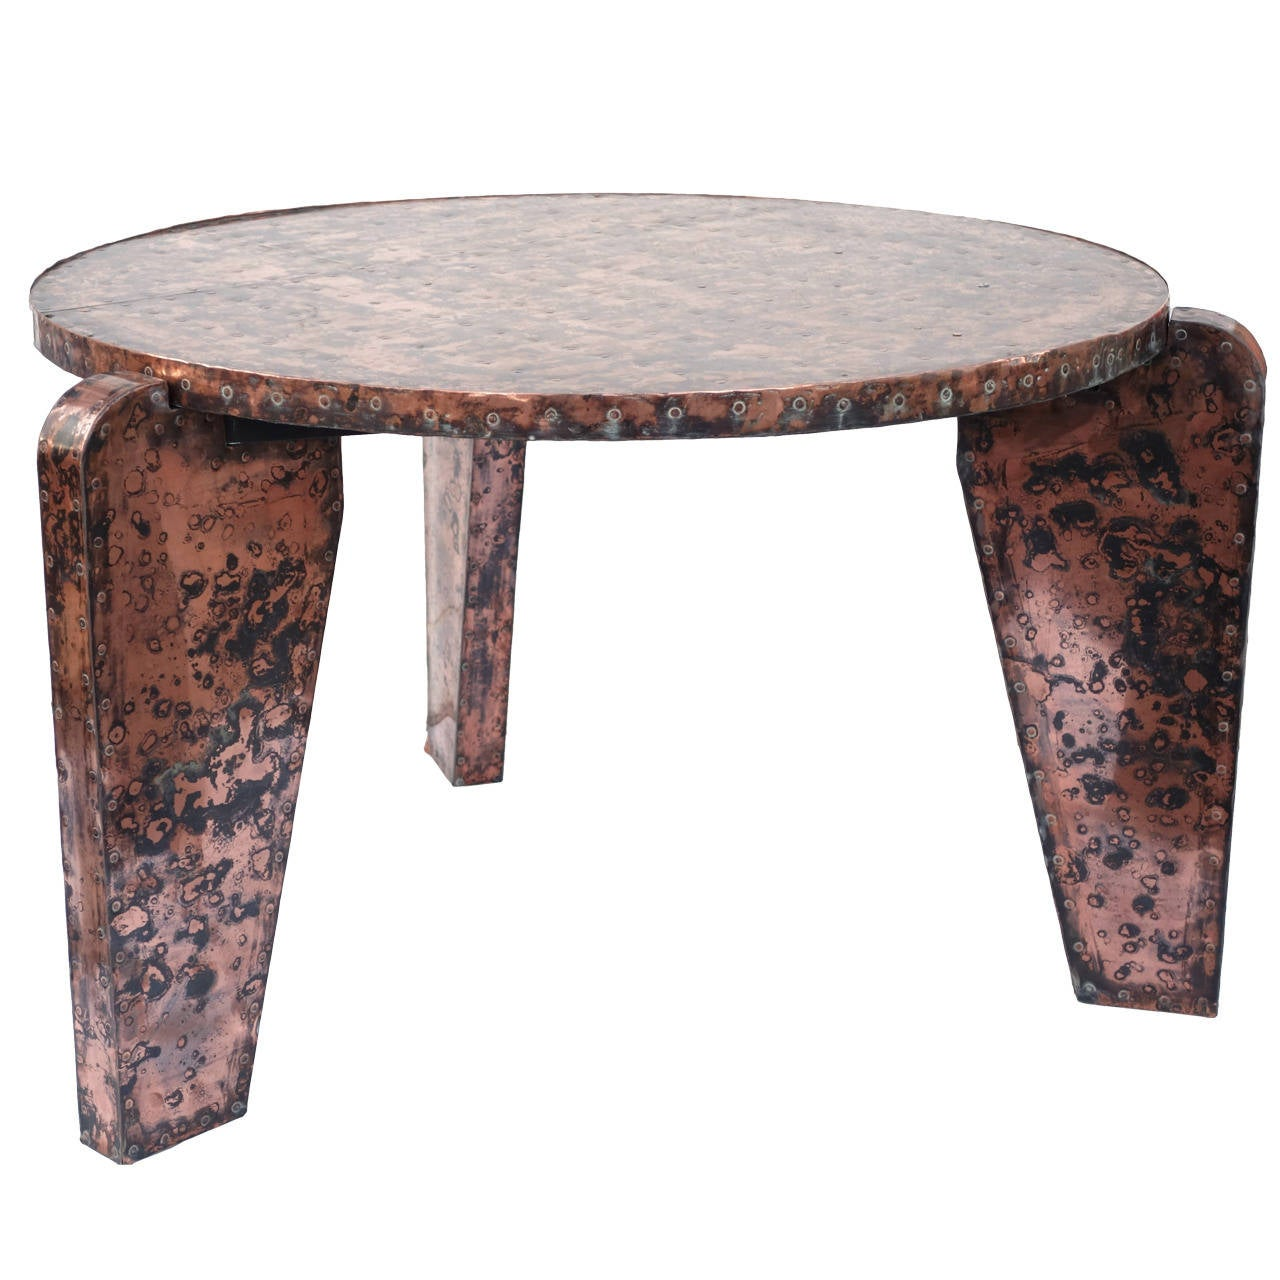 Unusual copper table for sale at 1stdibs for Unusual tables for sale